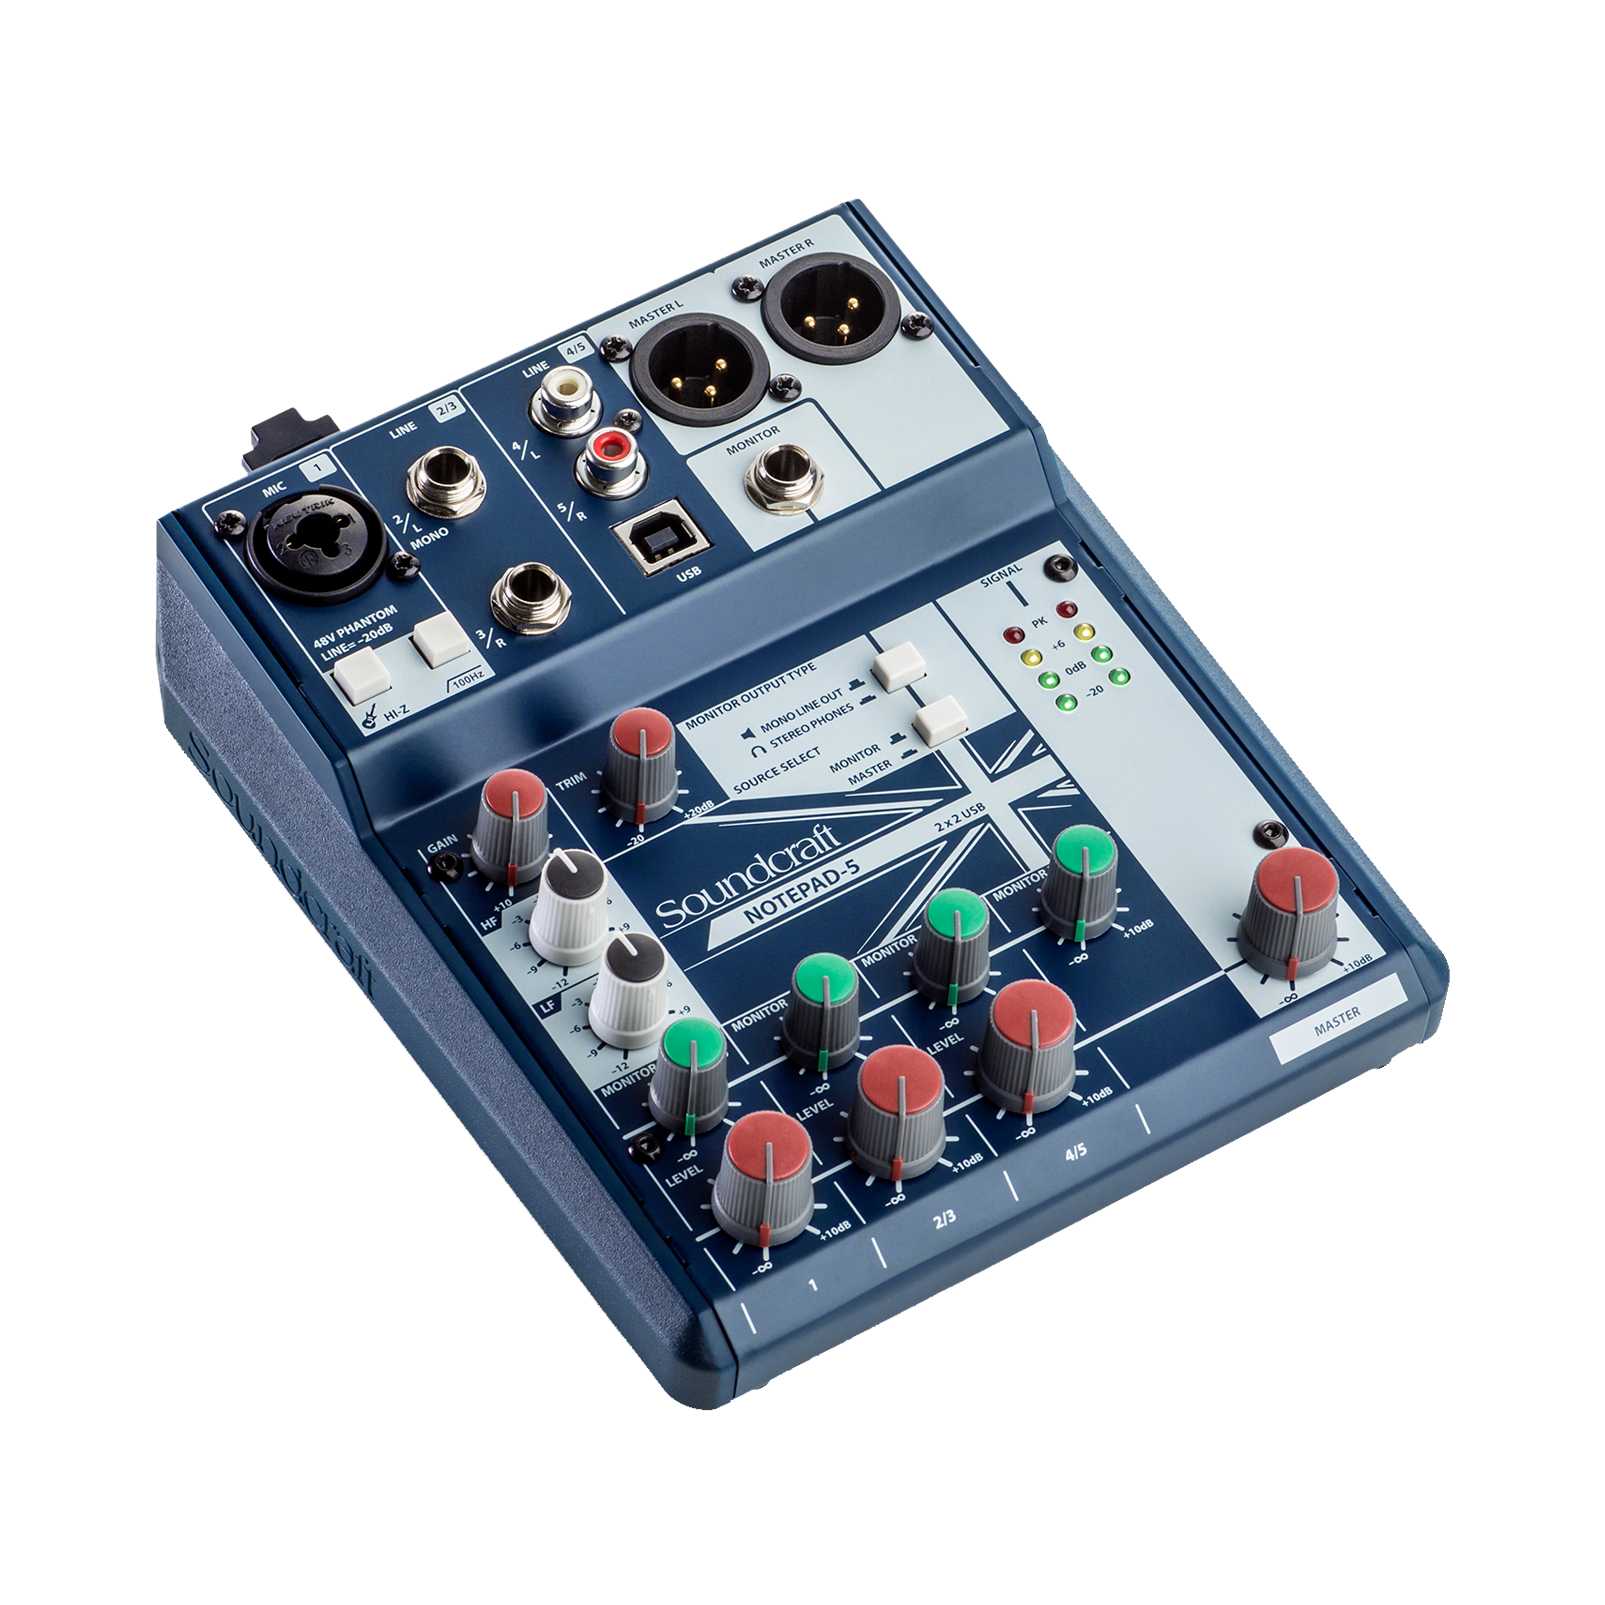 Notepad-5 - Dark Blue - Small-format analog mixing console with USB I/O - Hero